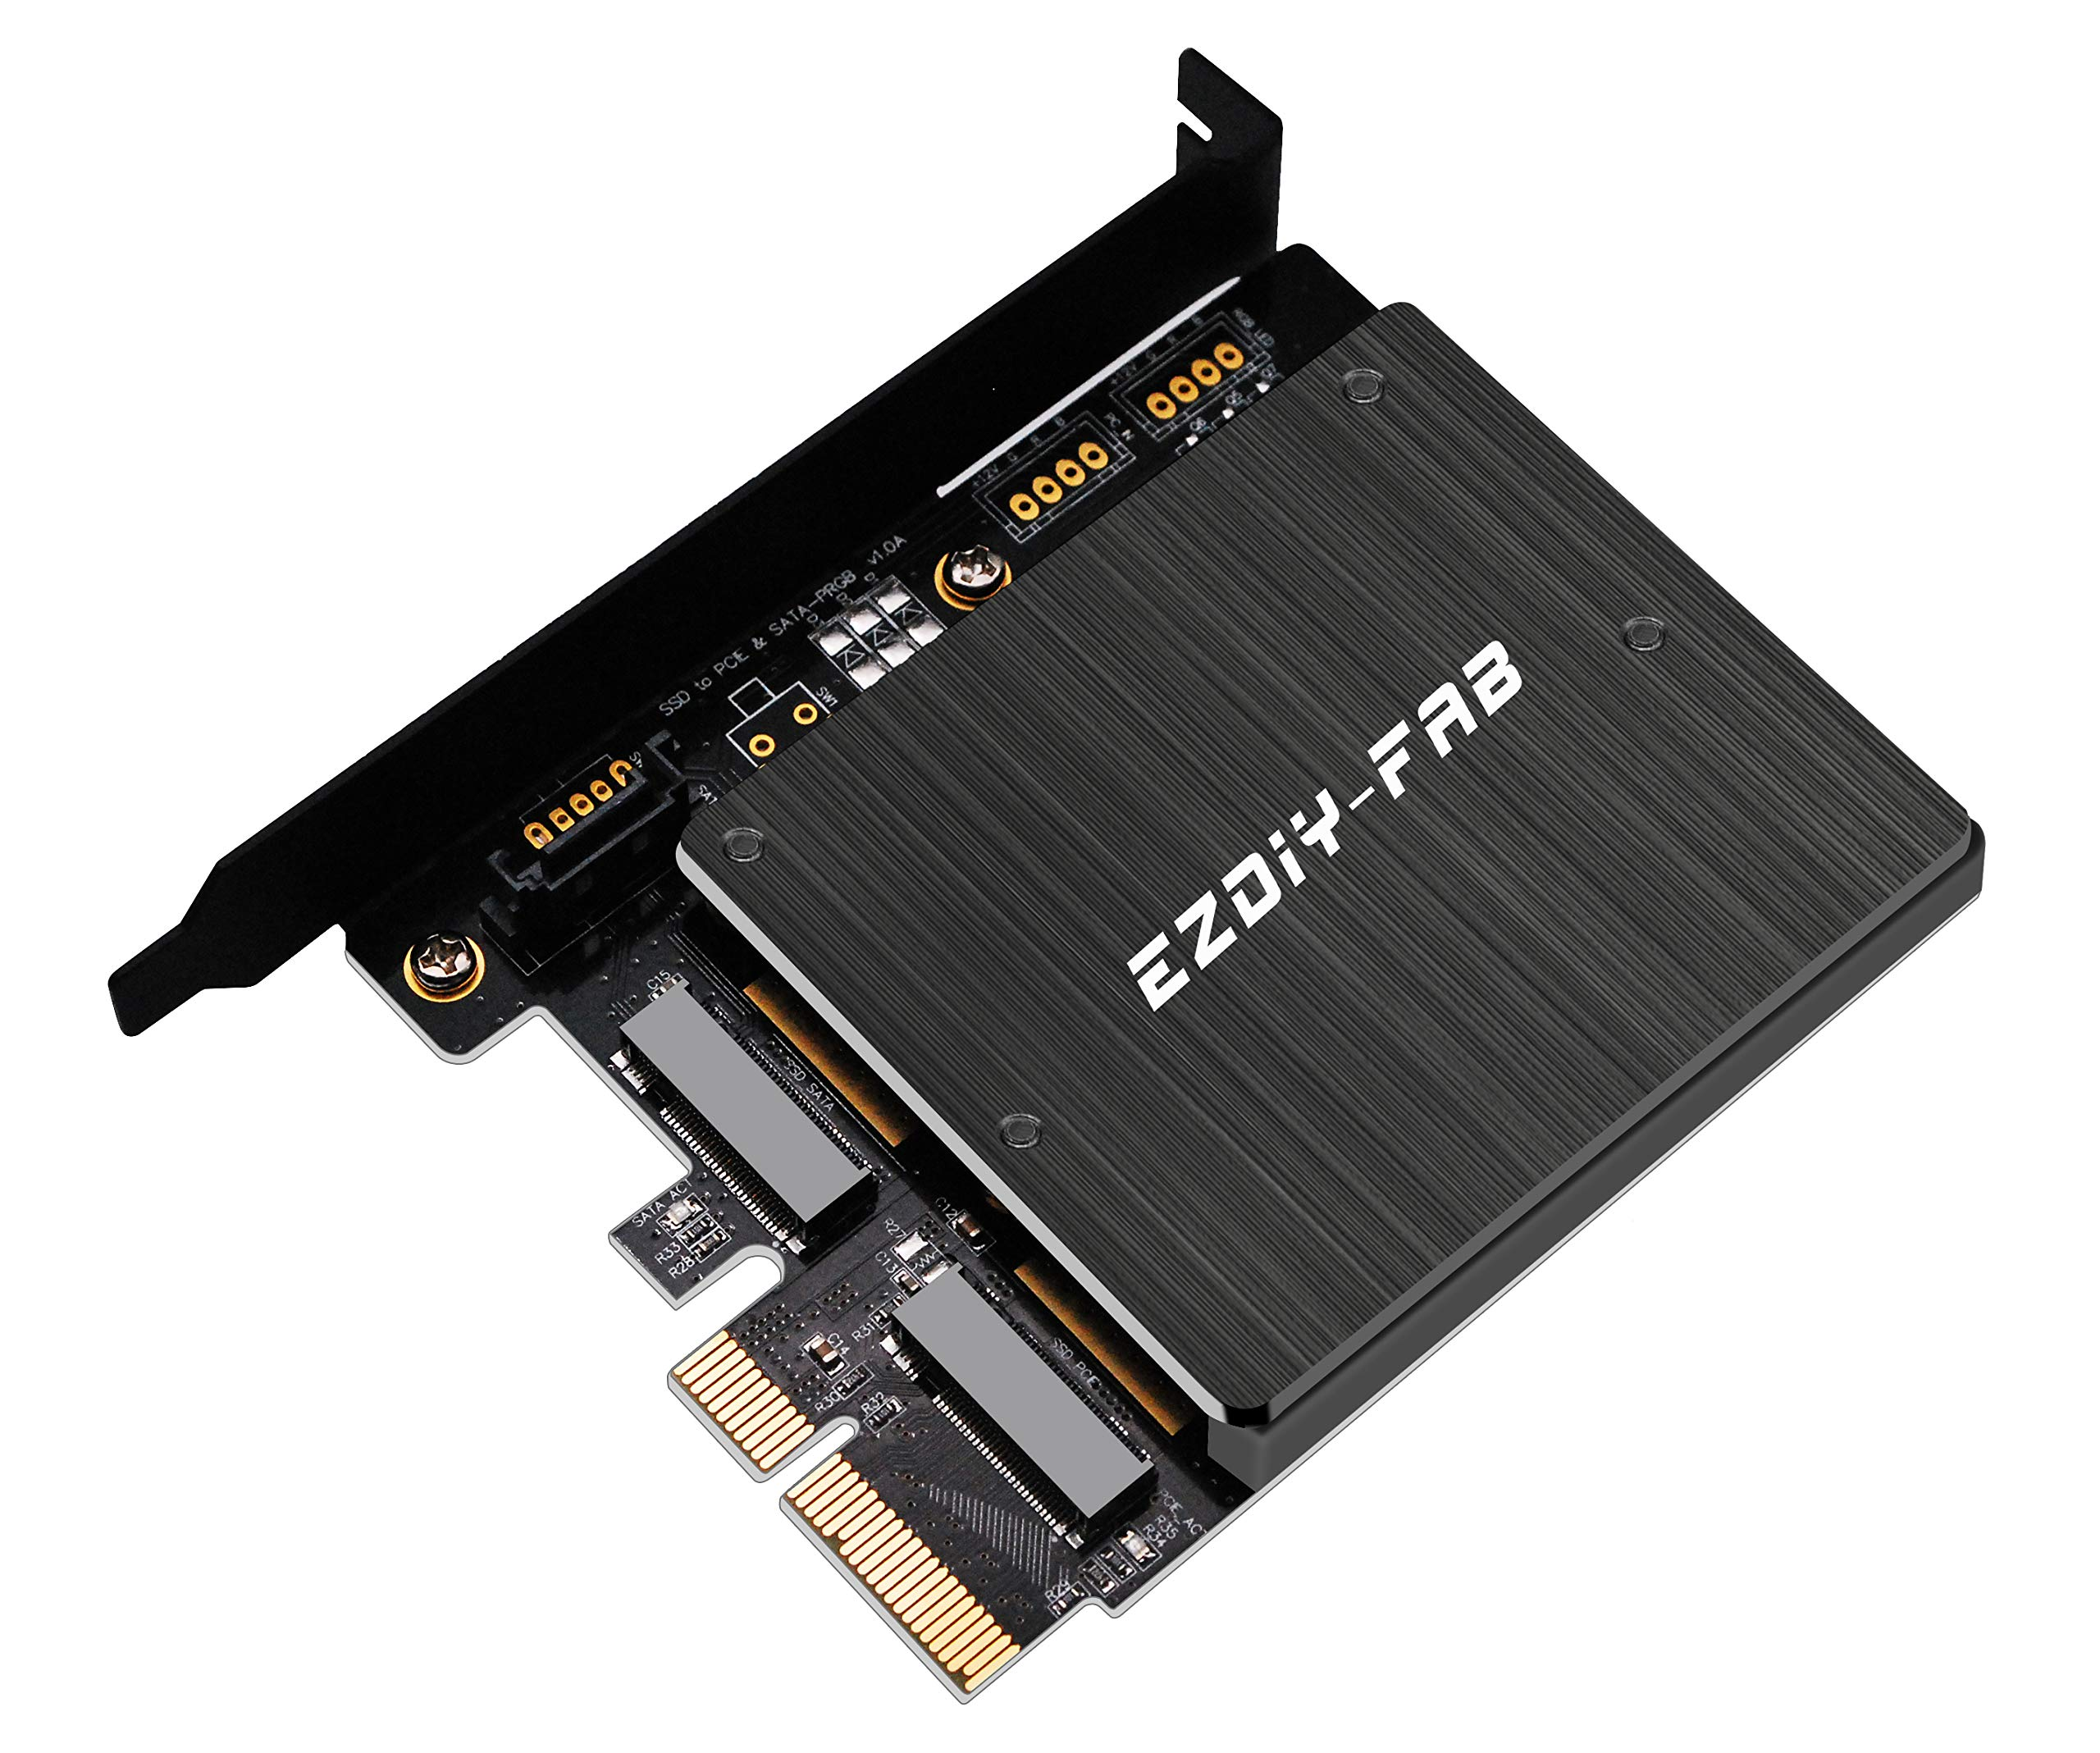 EZDIY-FAB Dual M.2 Adapter, M.2 PCIe NVMe and PCIe AHCI SSD